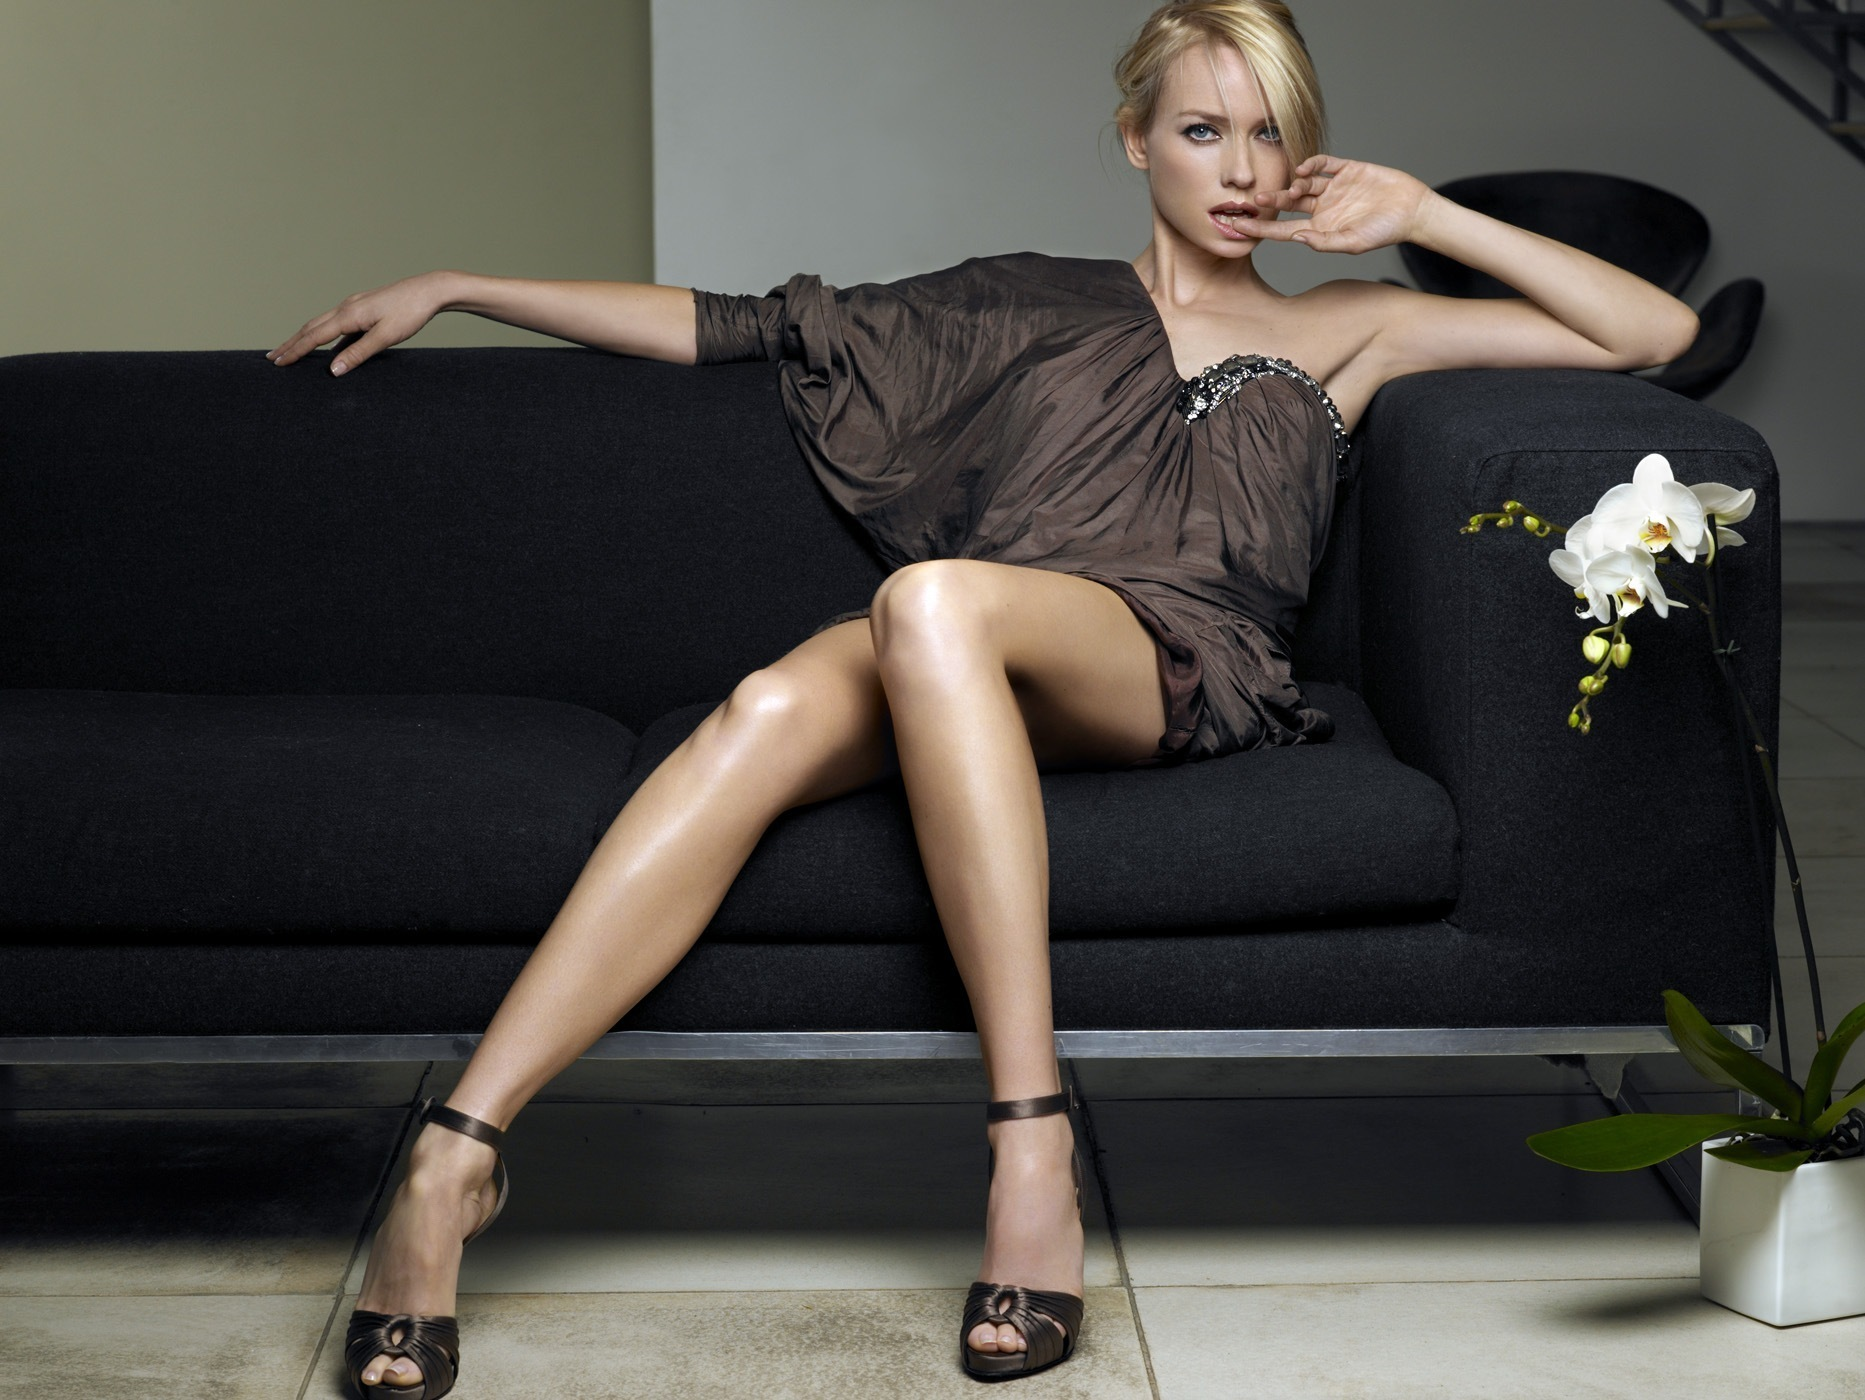 Perhaps actresses in pantyhose